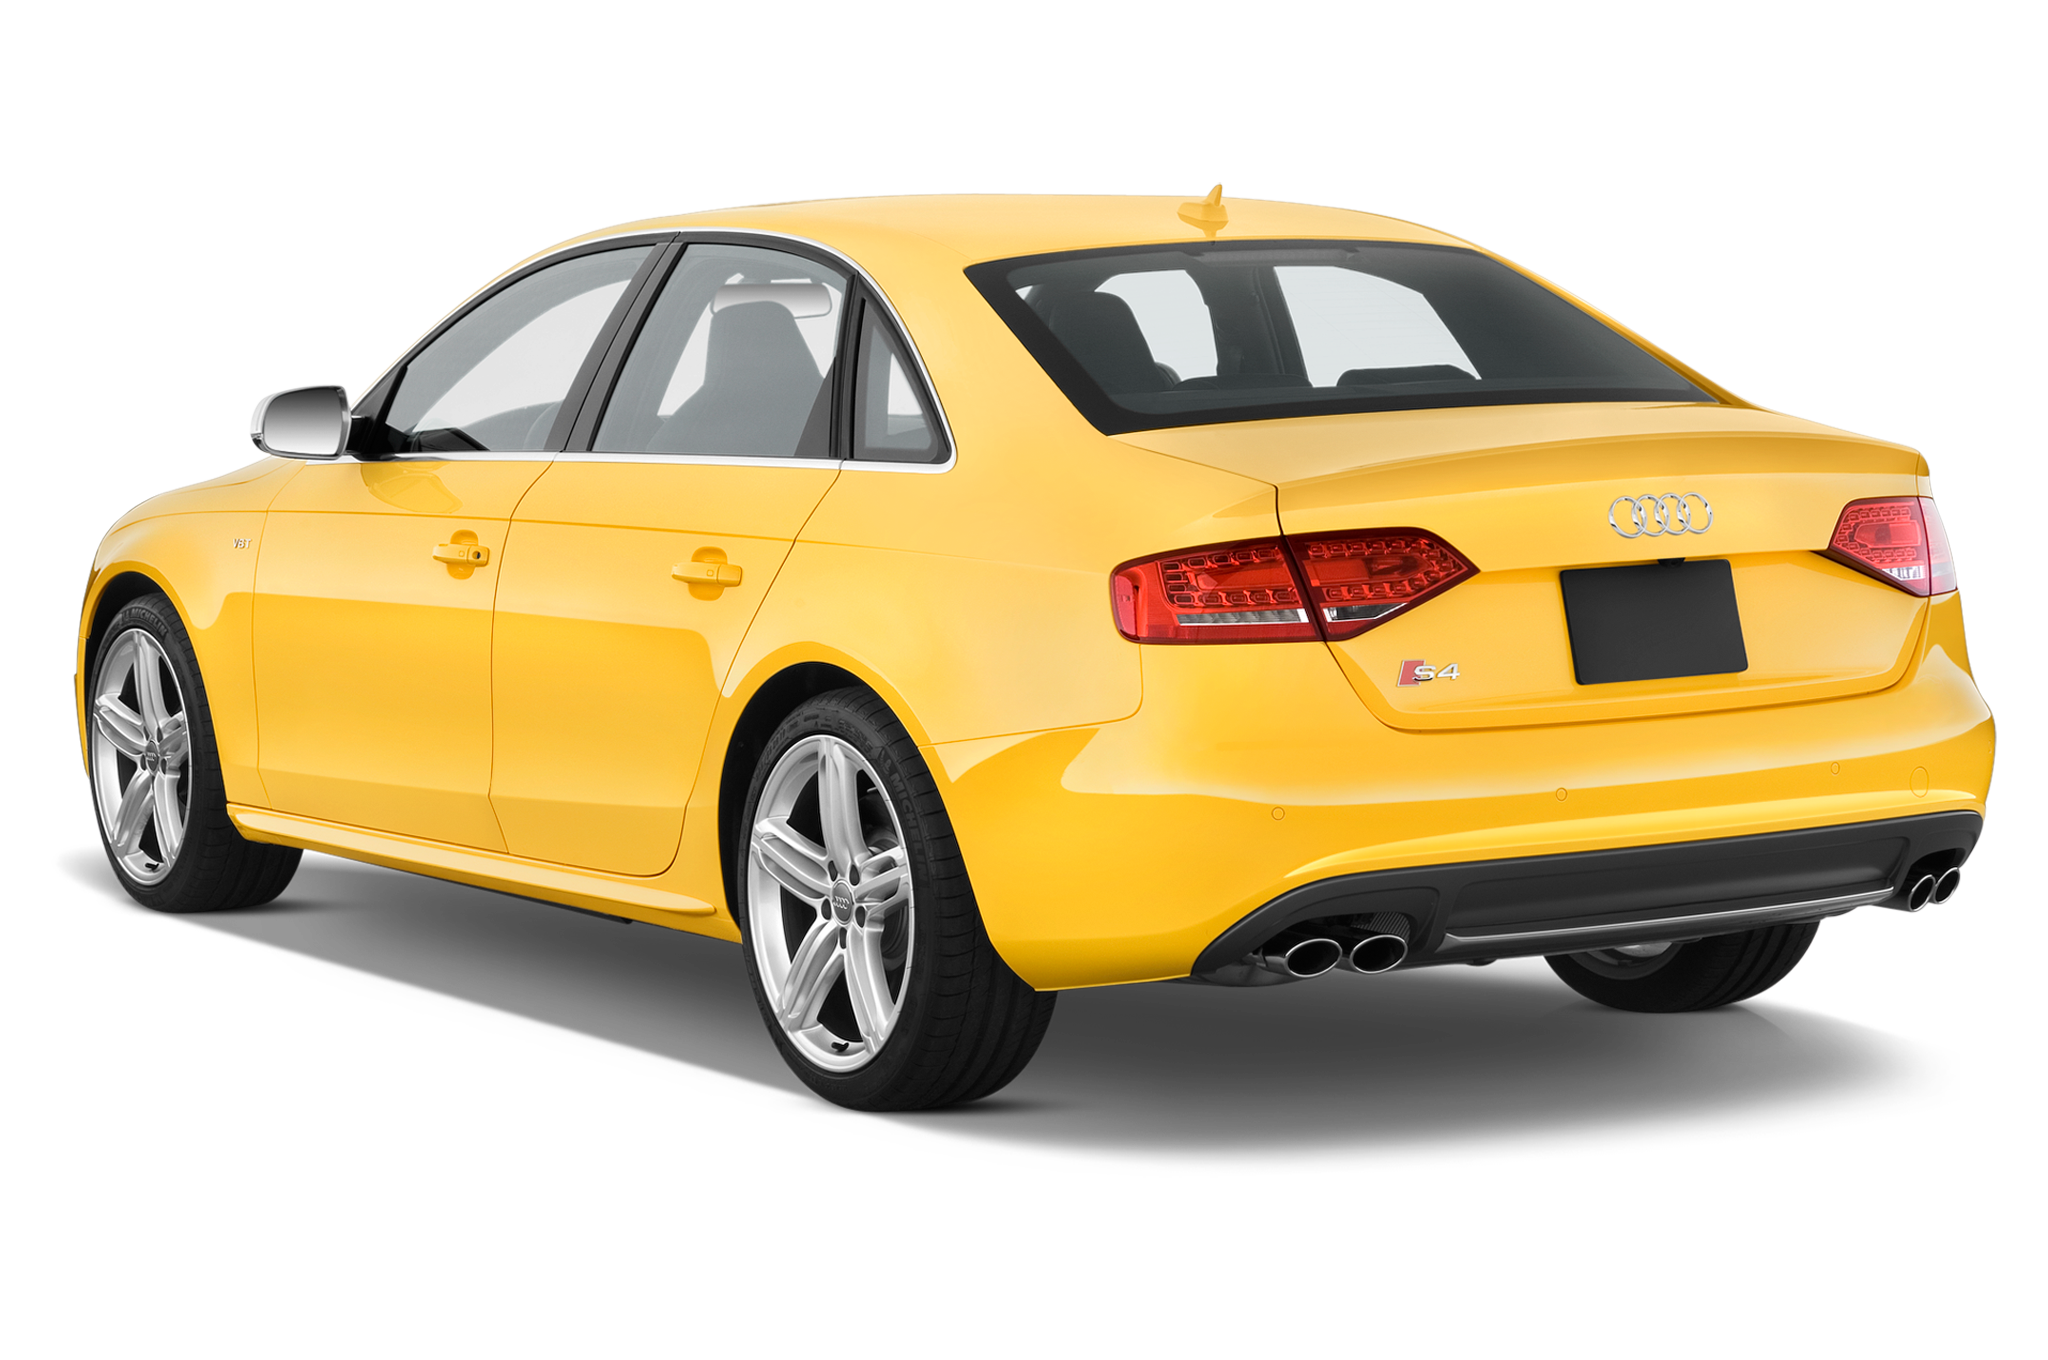 2011 audi s4 quattro mt6 sedan editors 39 notebook. Black Bedroom Furniture Sets. Home Design Ideas